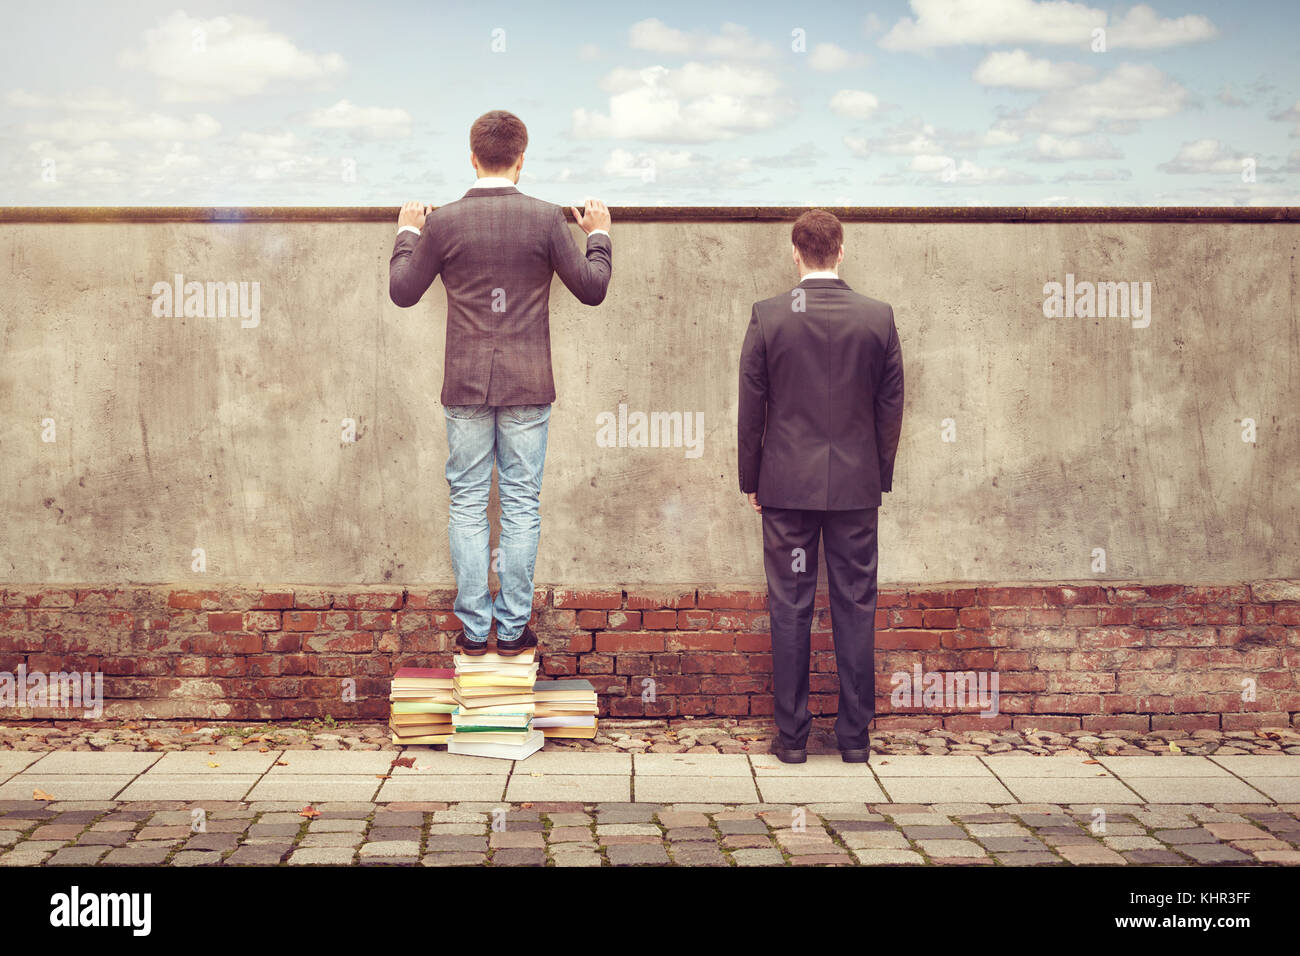 Books broaden one's horizon - Stock Image